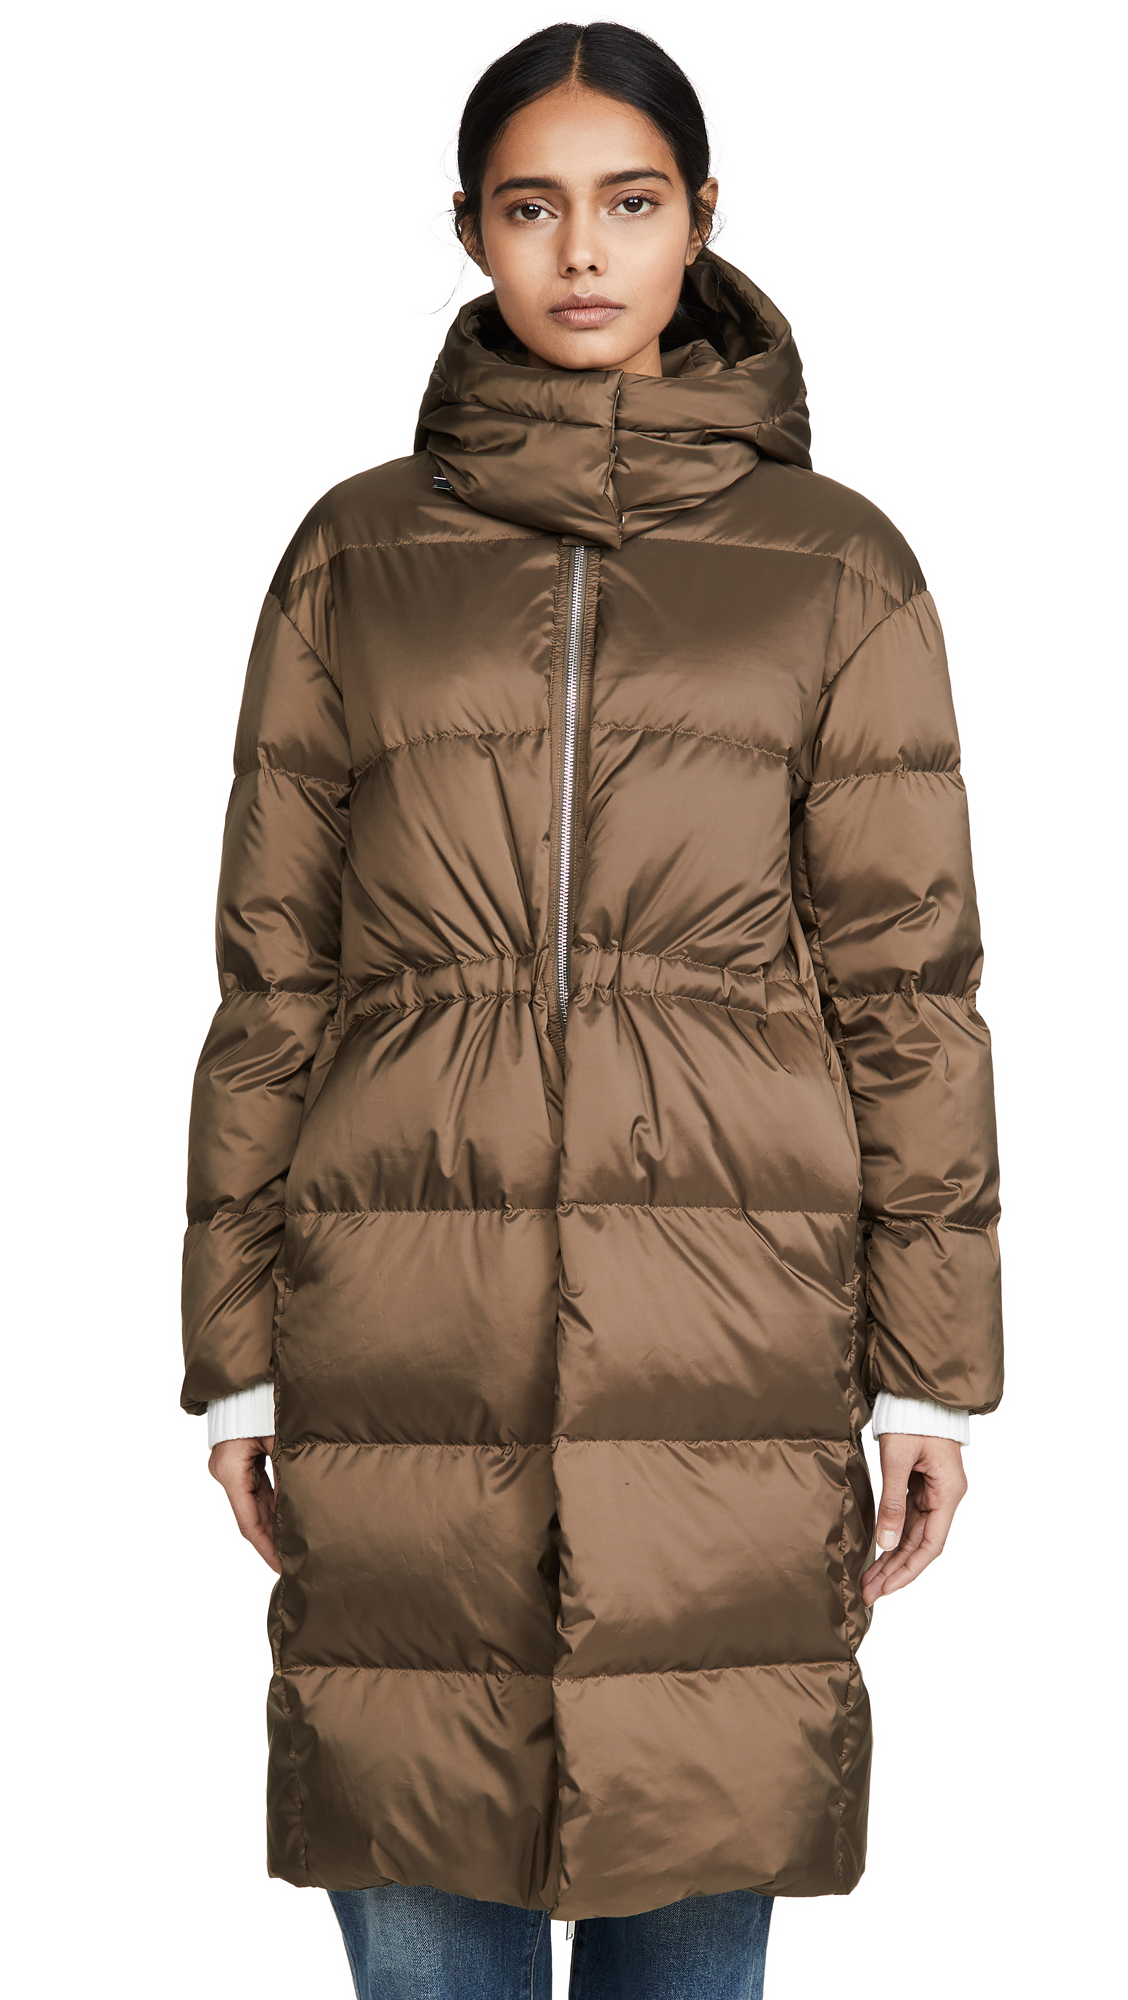 Buy Theory Reversible Puffer Coat online beautiful Theory Jackets, Coats, Down Jackets